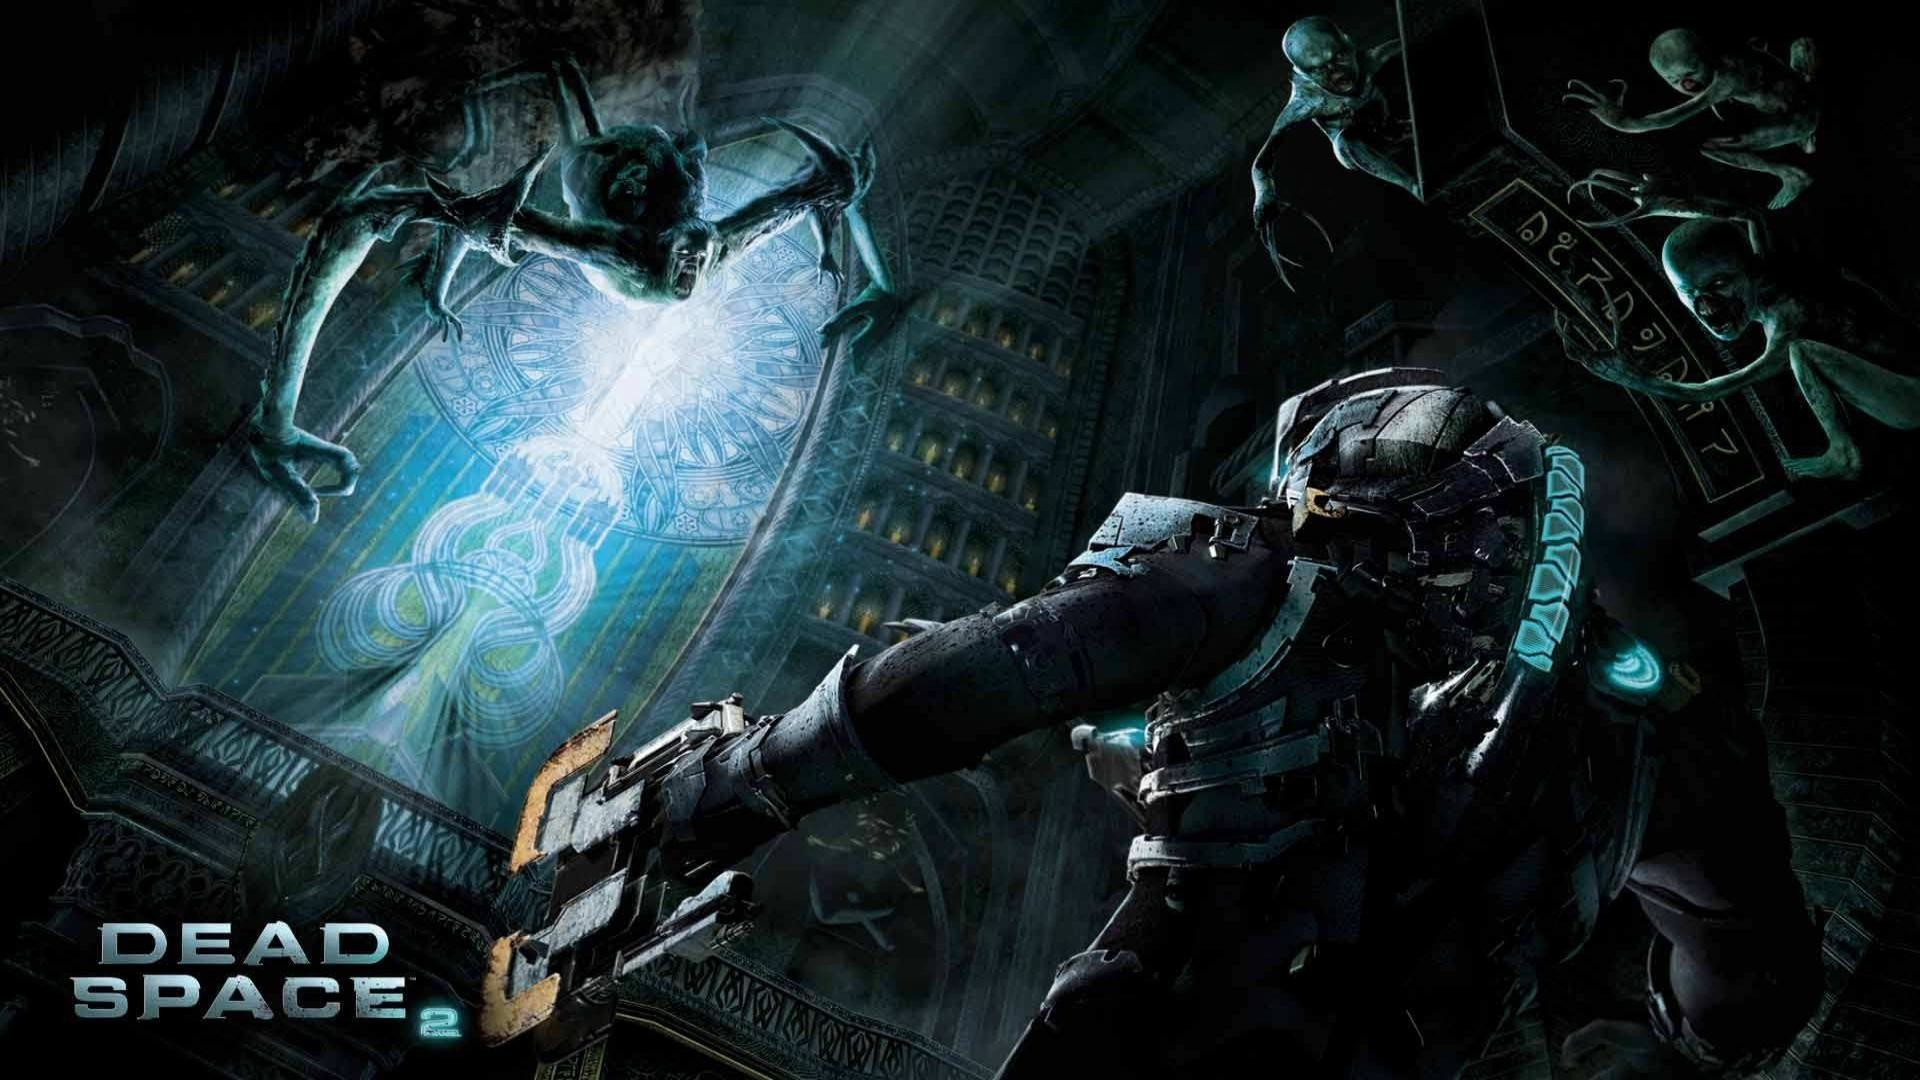 Video Game HD Wallpapers Game Wallpapers Download .